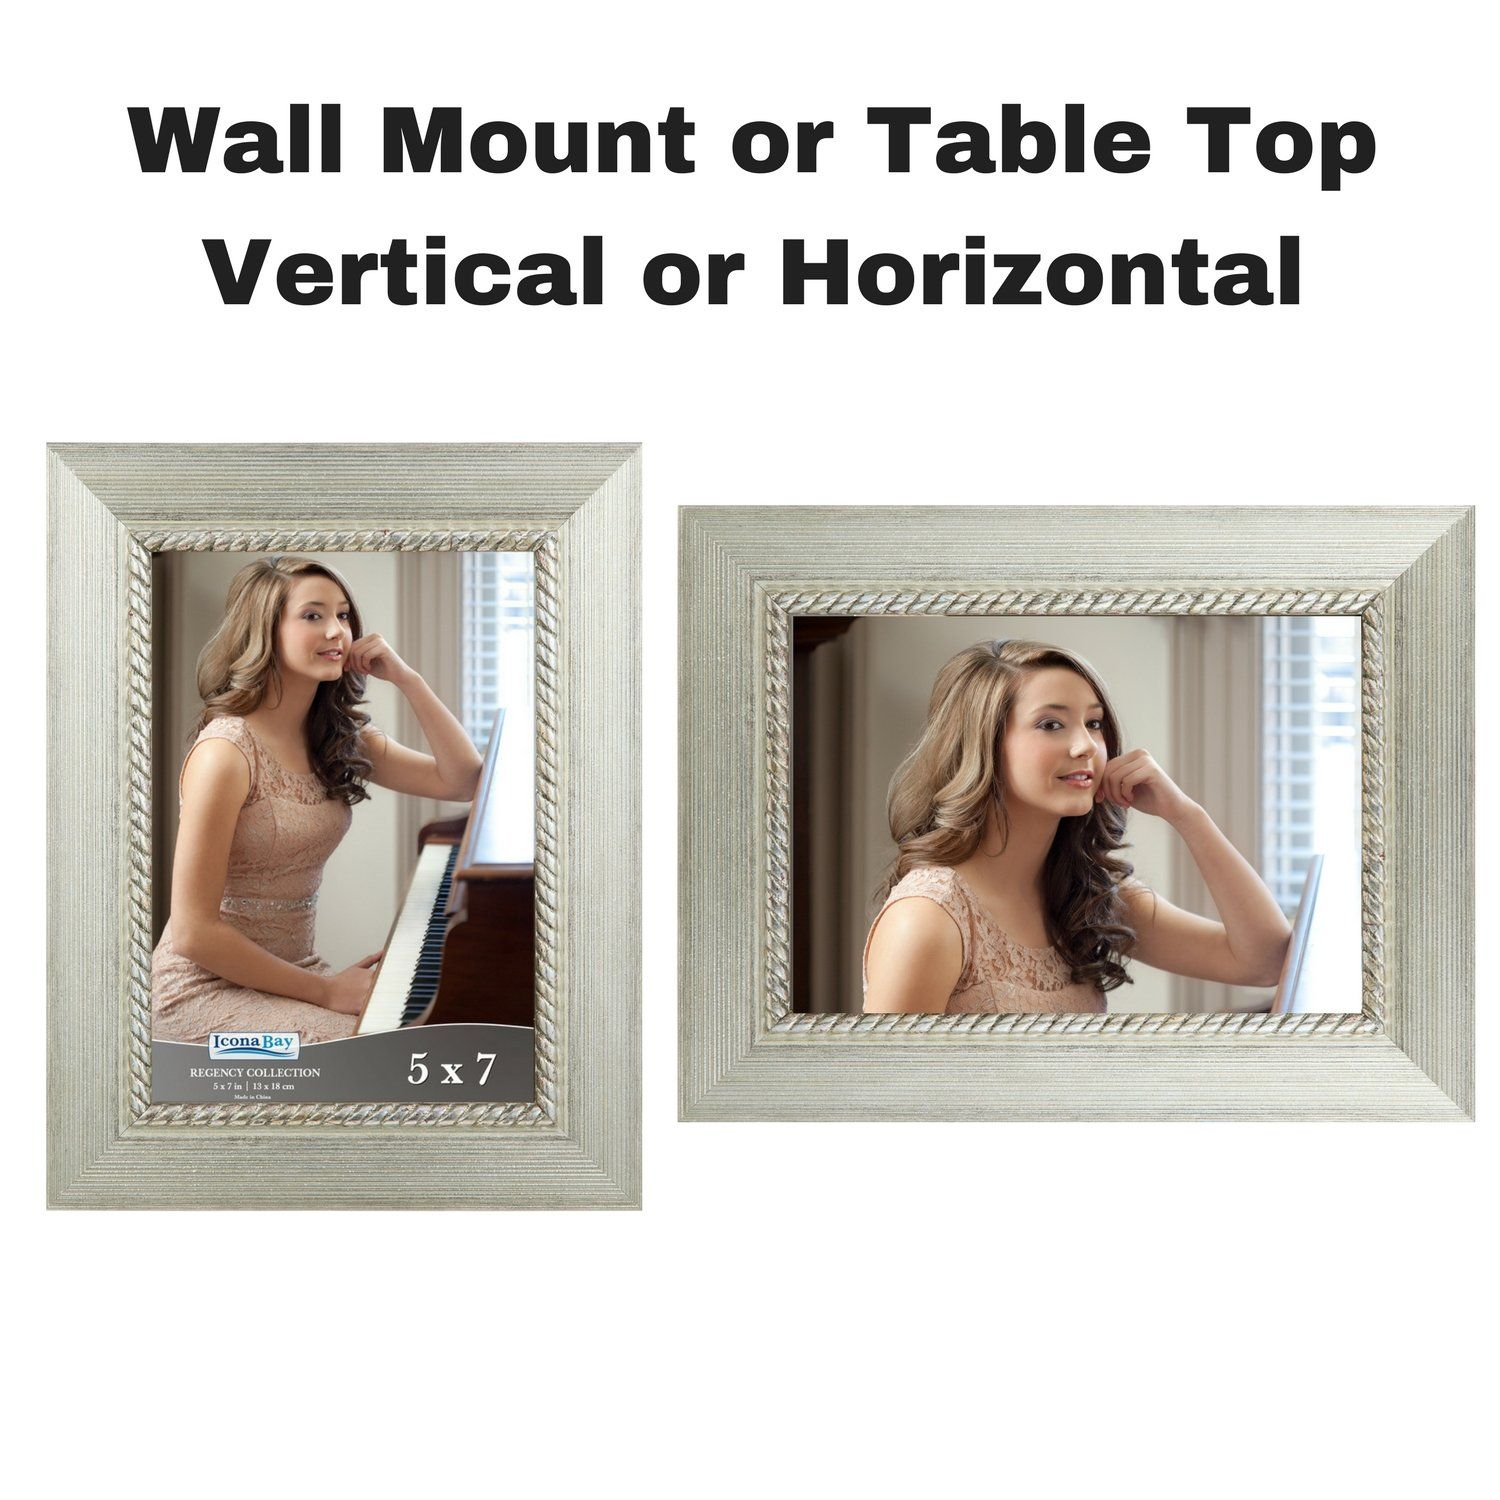 Icona Bay 5x7 Picture Frame 5 X 7 3 Pack Silver Photo Frames Wall Mount Or Table Top Black Velvet Back Landscape As 7 5x7 Picture Frames Frame Photo Frame Wall 5 x 7 picture frames